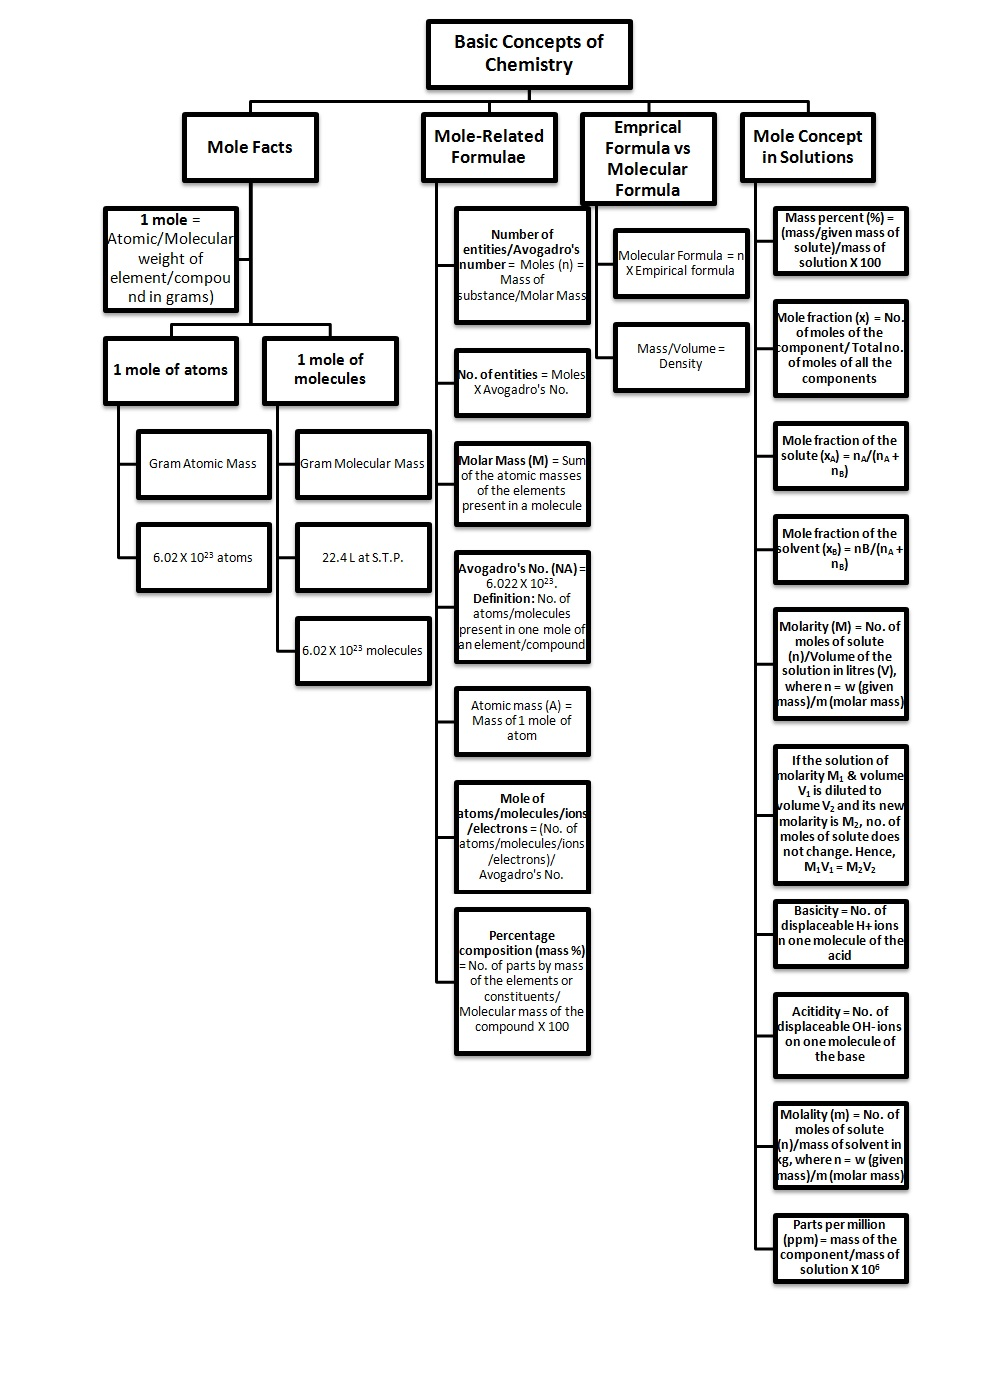 Jee Advanced Tips Mind Map For Basic Concepts Of Chemistry